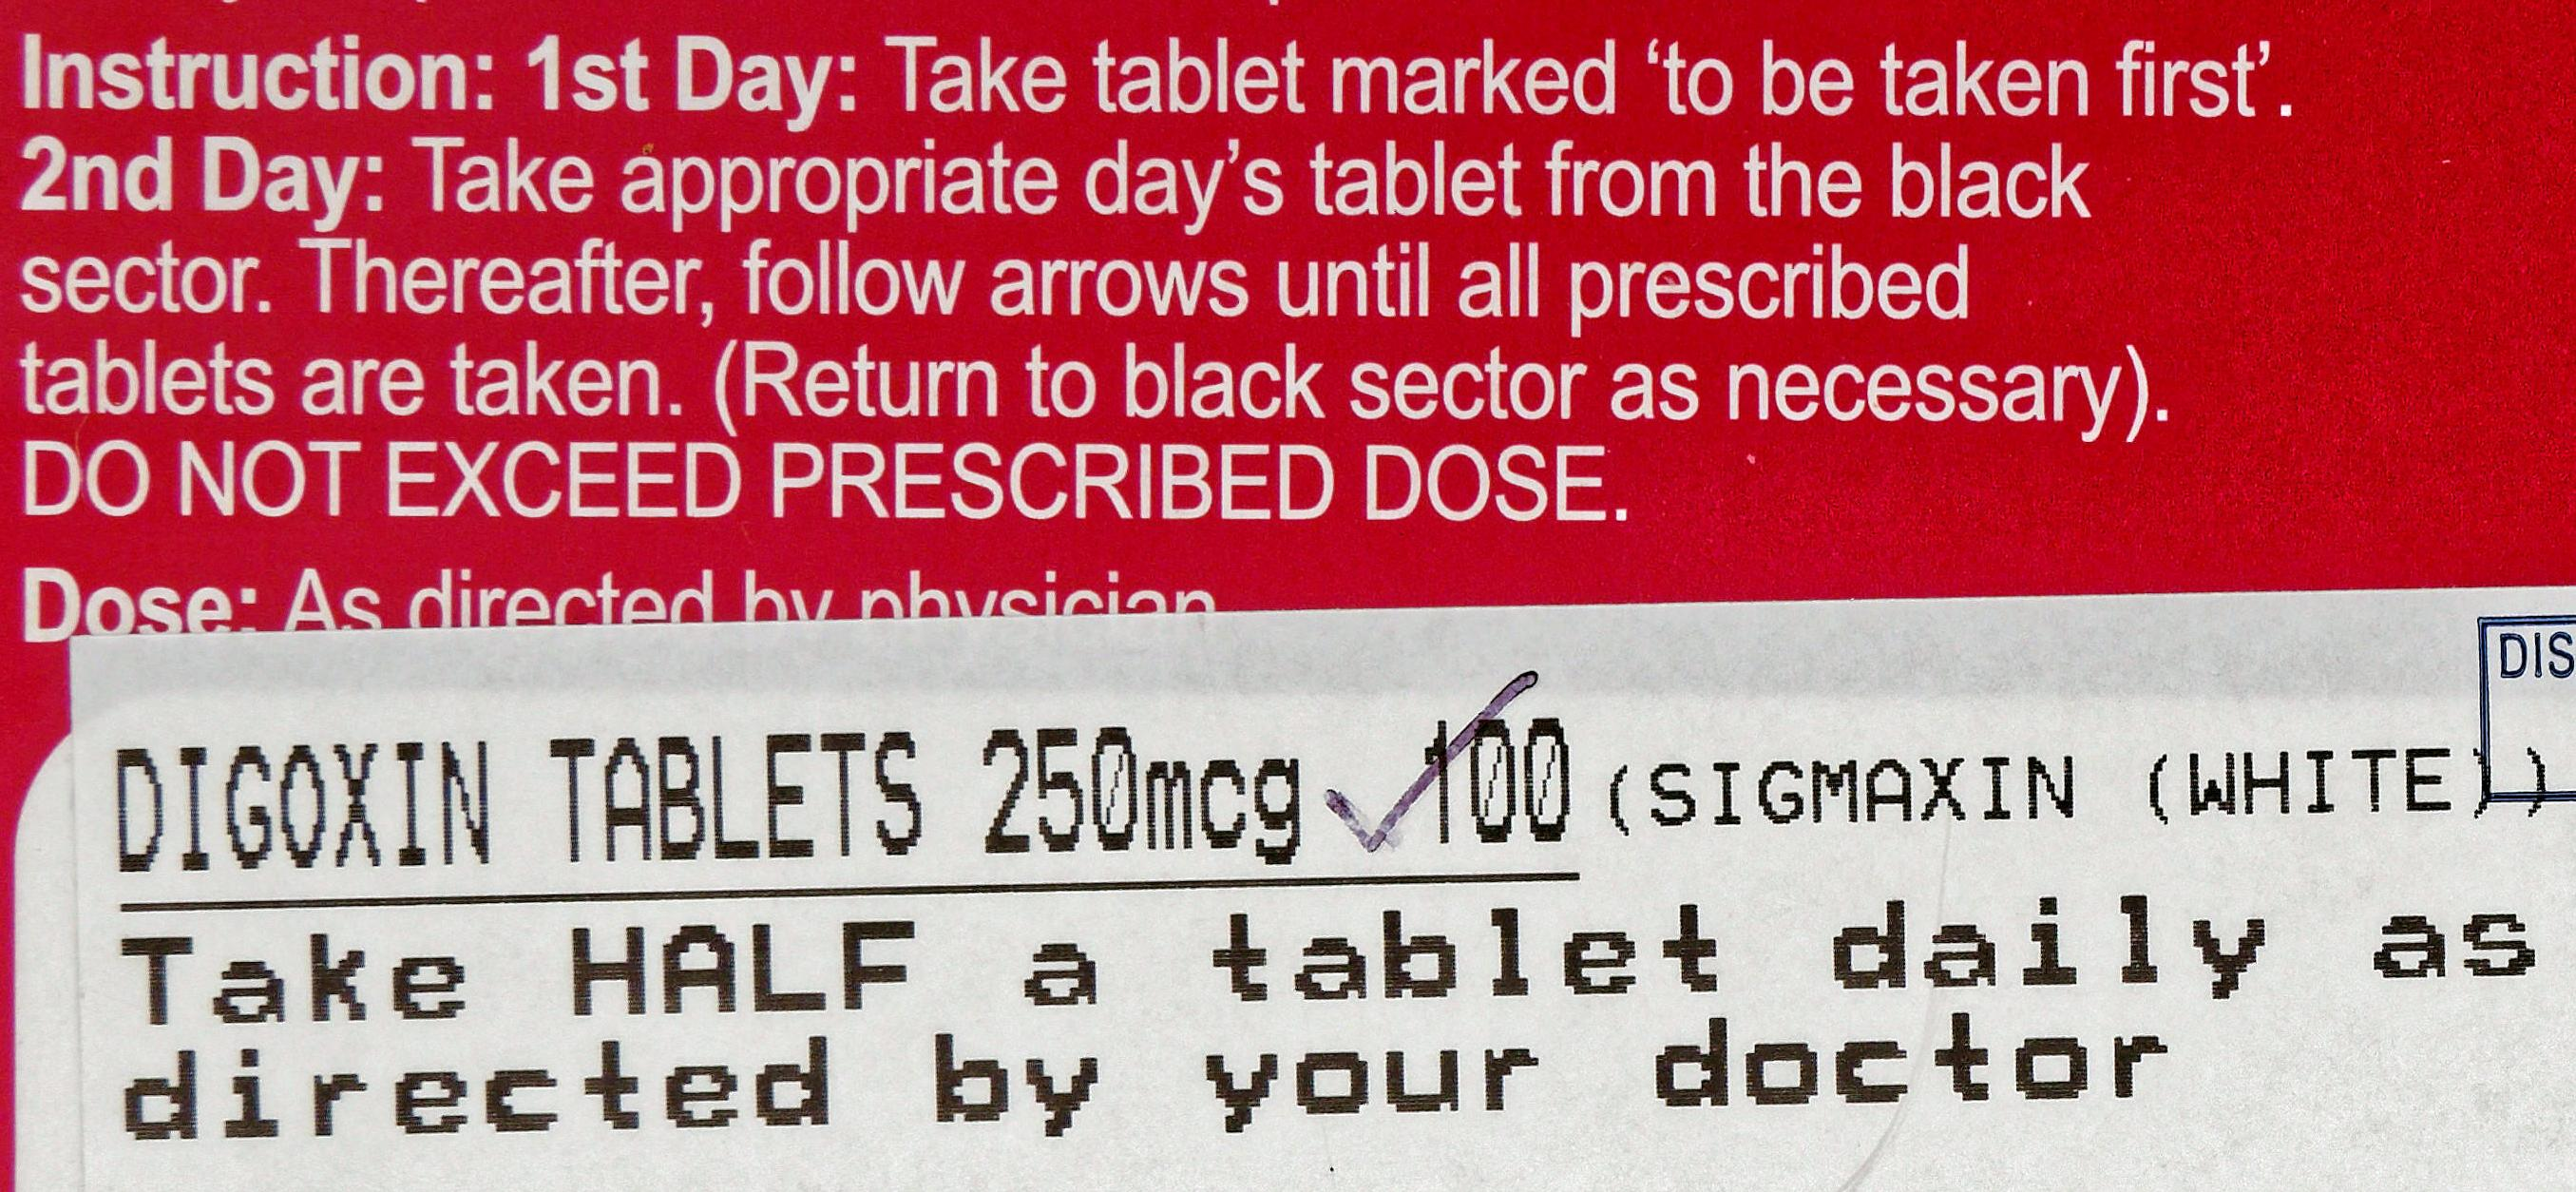 This should be Digoxin-1-detail-3.jpeg.  Is it missing?